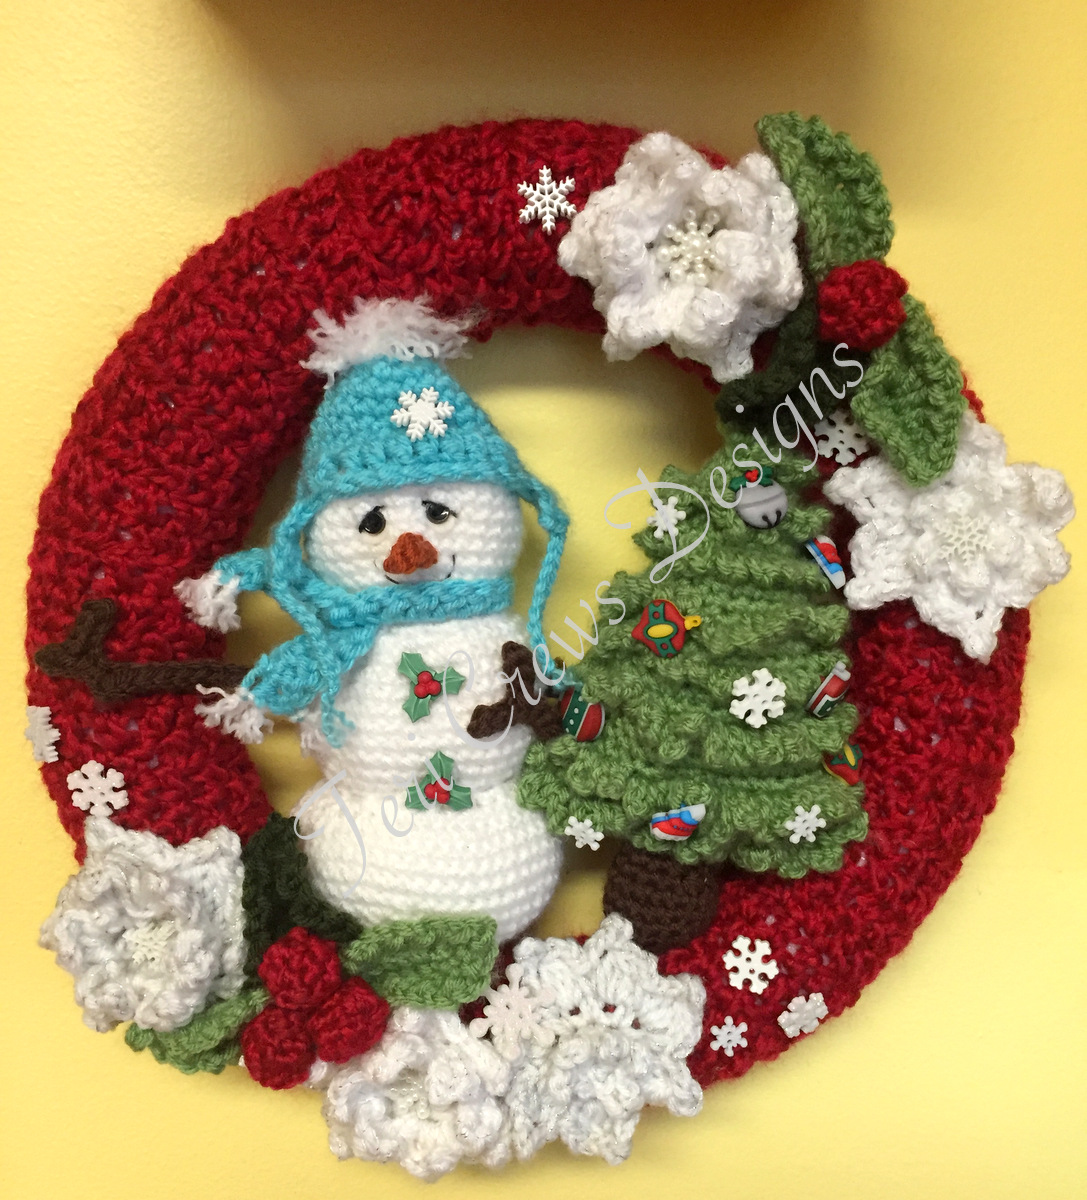 Teri\'s Blog: New Winter Wreath Crochet Pattern